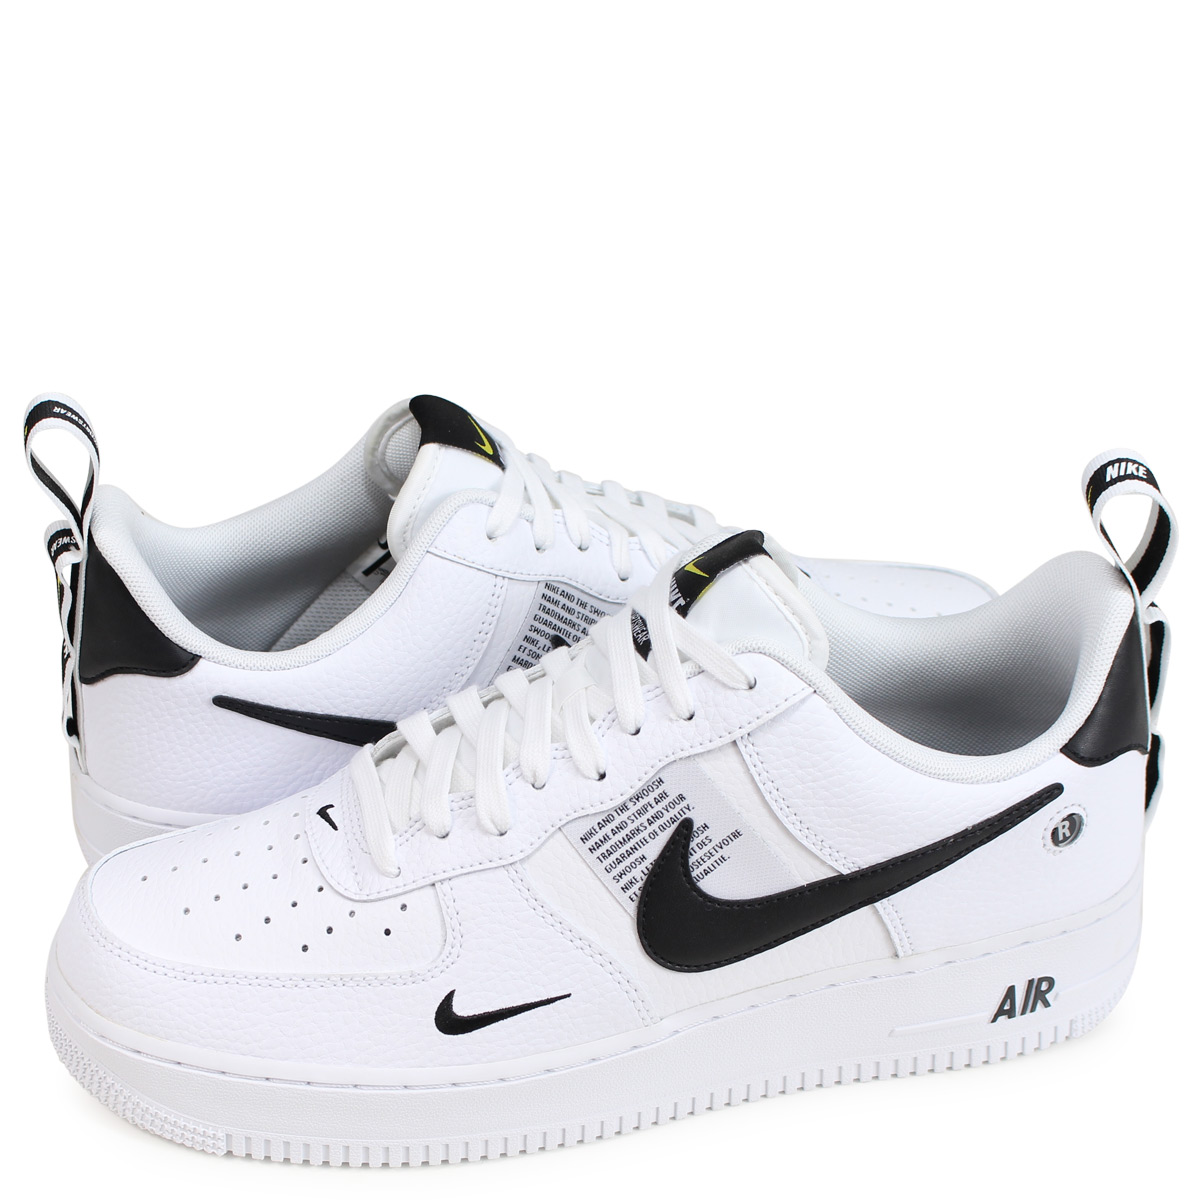 Nike NIKE air force 1 sneakers men AIR FORCE 1 07 LV8 UTILITY white AJ7747 100